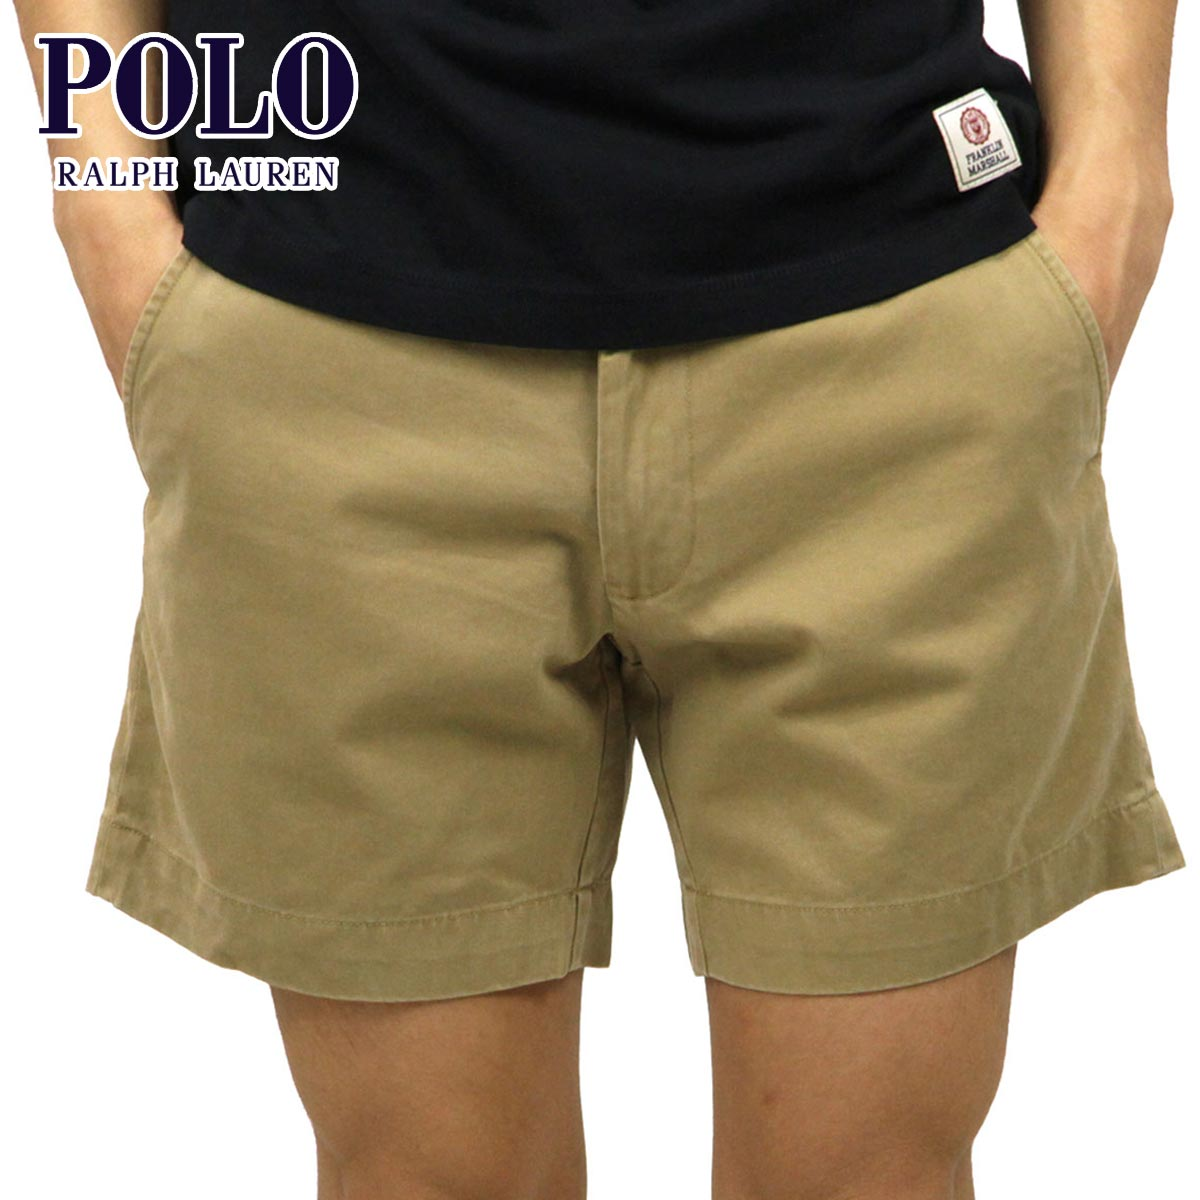 Polo 6 Regular Lauren Classic Ralph Fit Short D00s20 Chino Pants Men's Article Bottoms Shorts dxBroQCeW